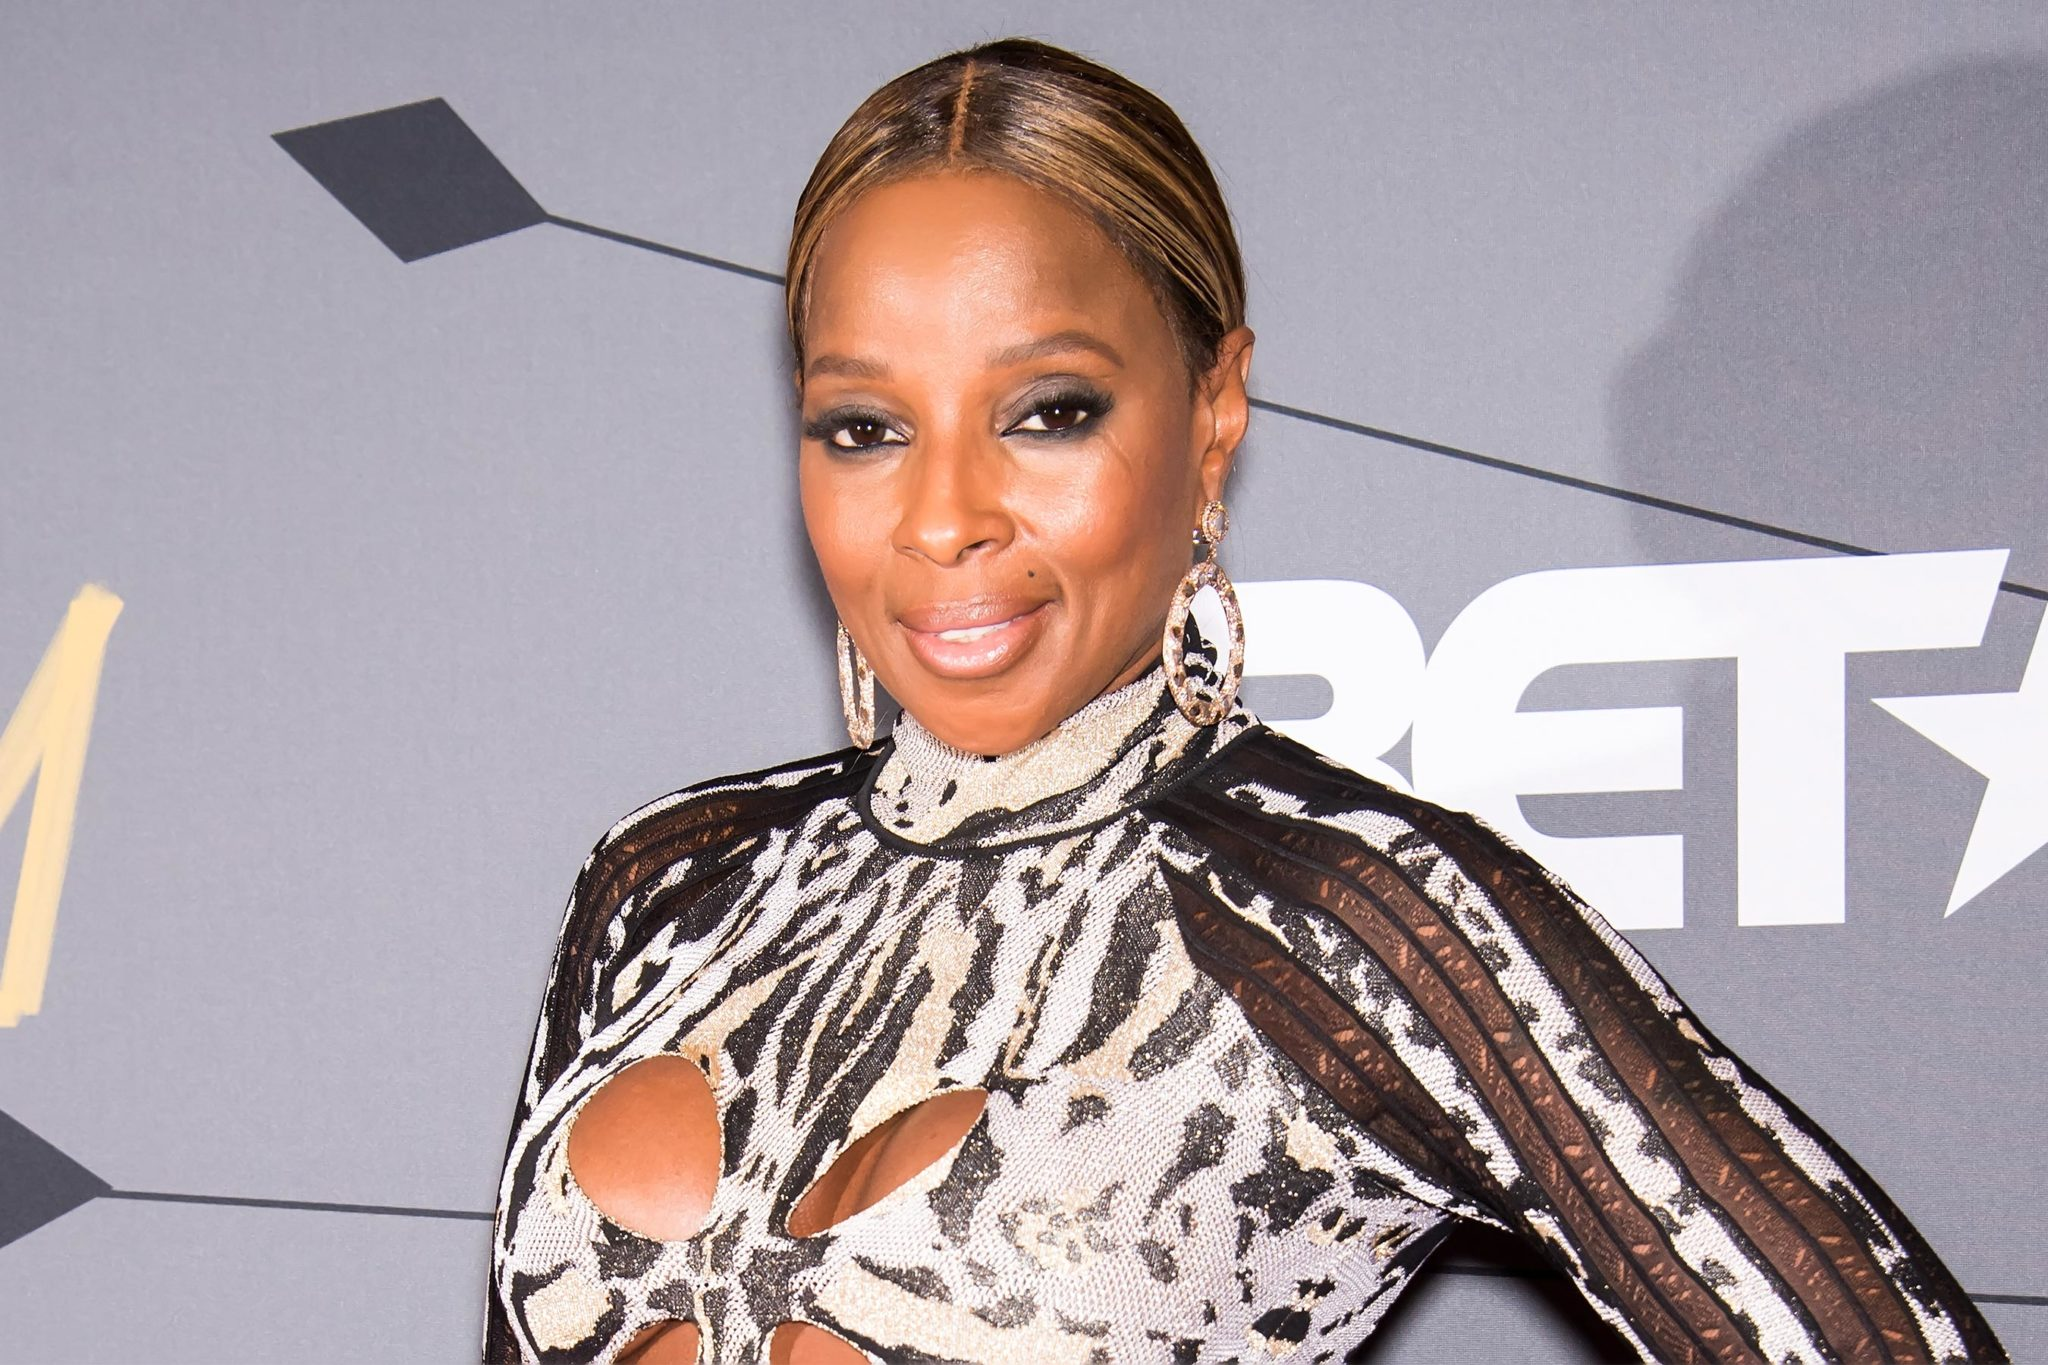 Mary J. Blige to Star in Power Spinoff, Power Book II: Ghost